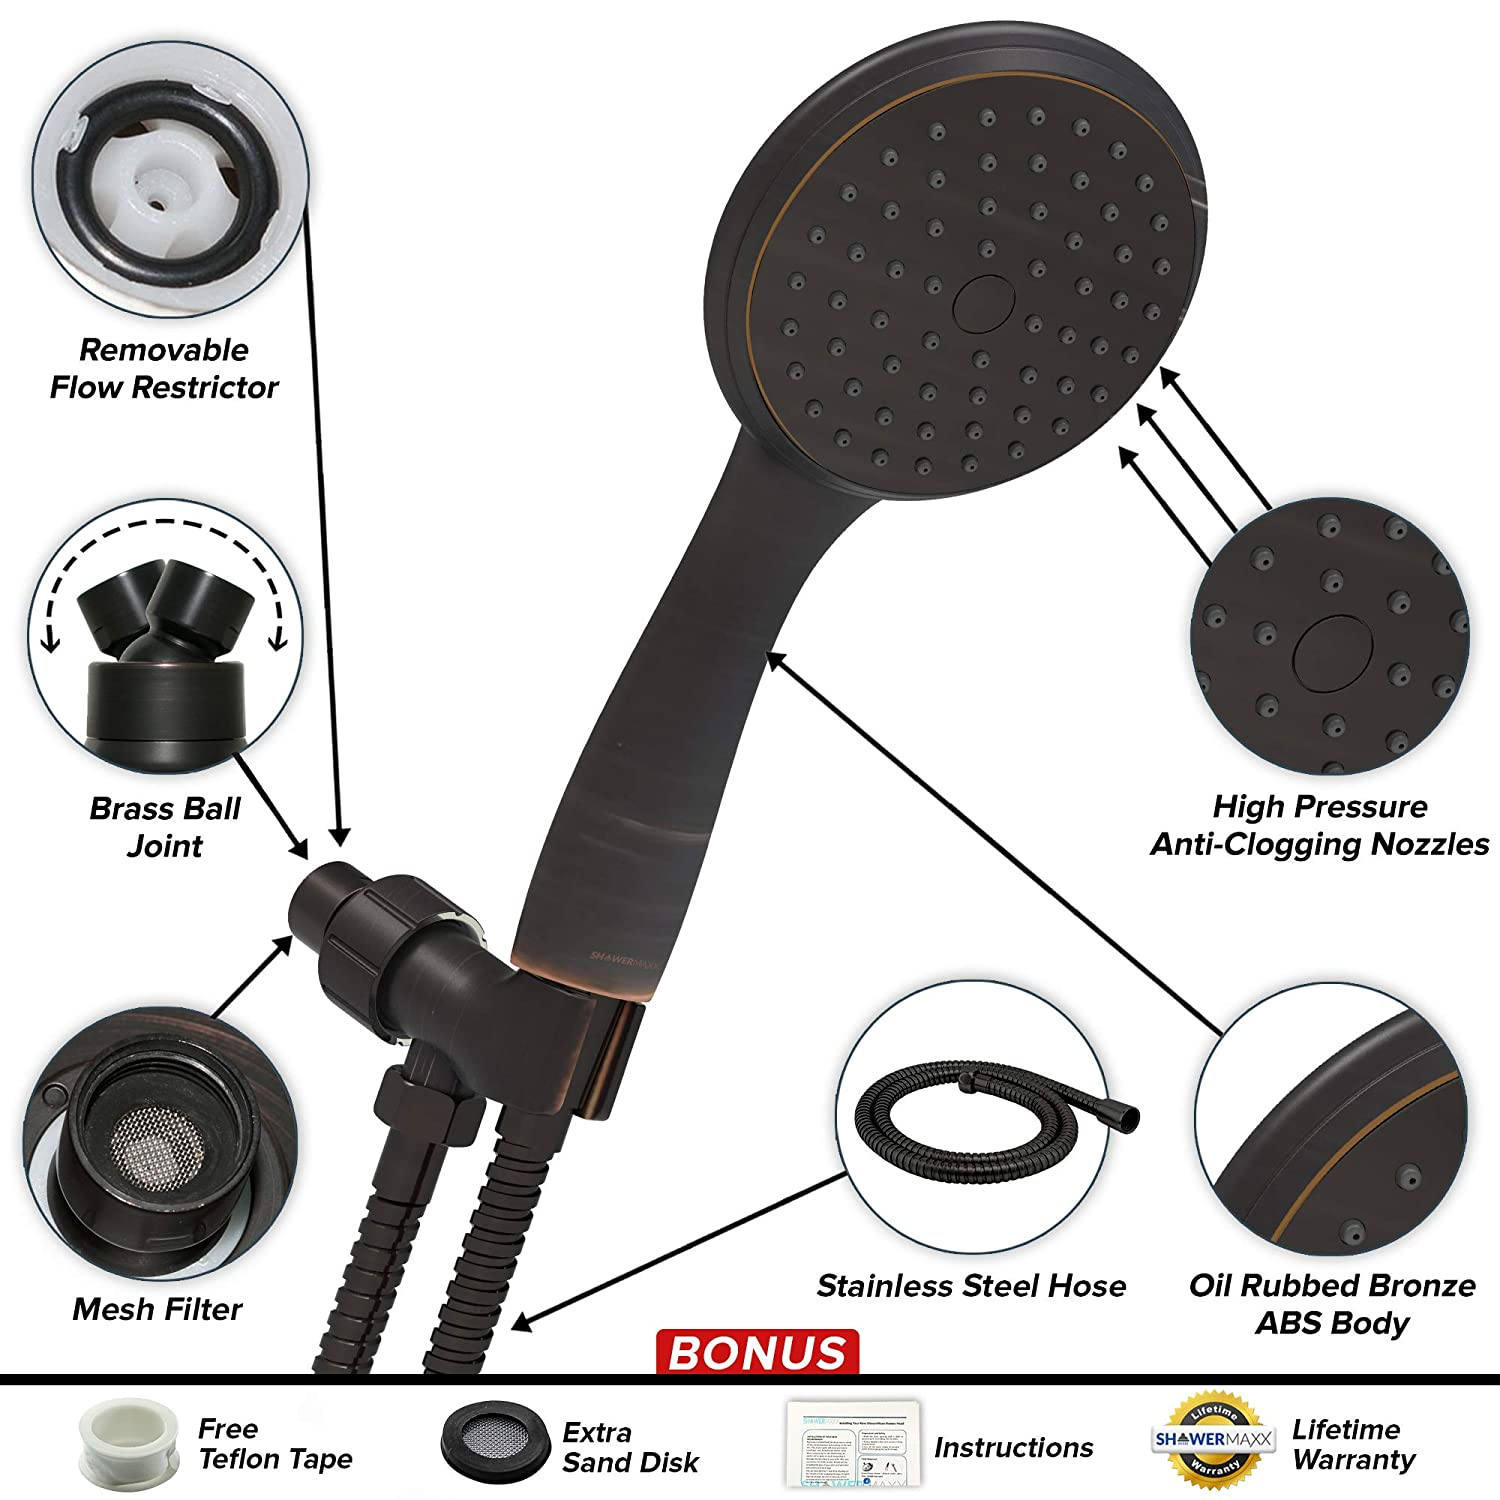 ShowerMaxx Oil Rubbed Bronze Finish Easy-to-Remove Flow Restrictor to MAXX-imize Your Shower 3.3 inch Ultra High Pressure Hand Held Shower Head Long Stainless Steel Hose Choice Series